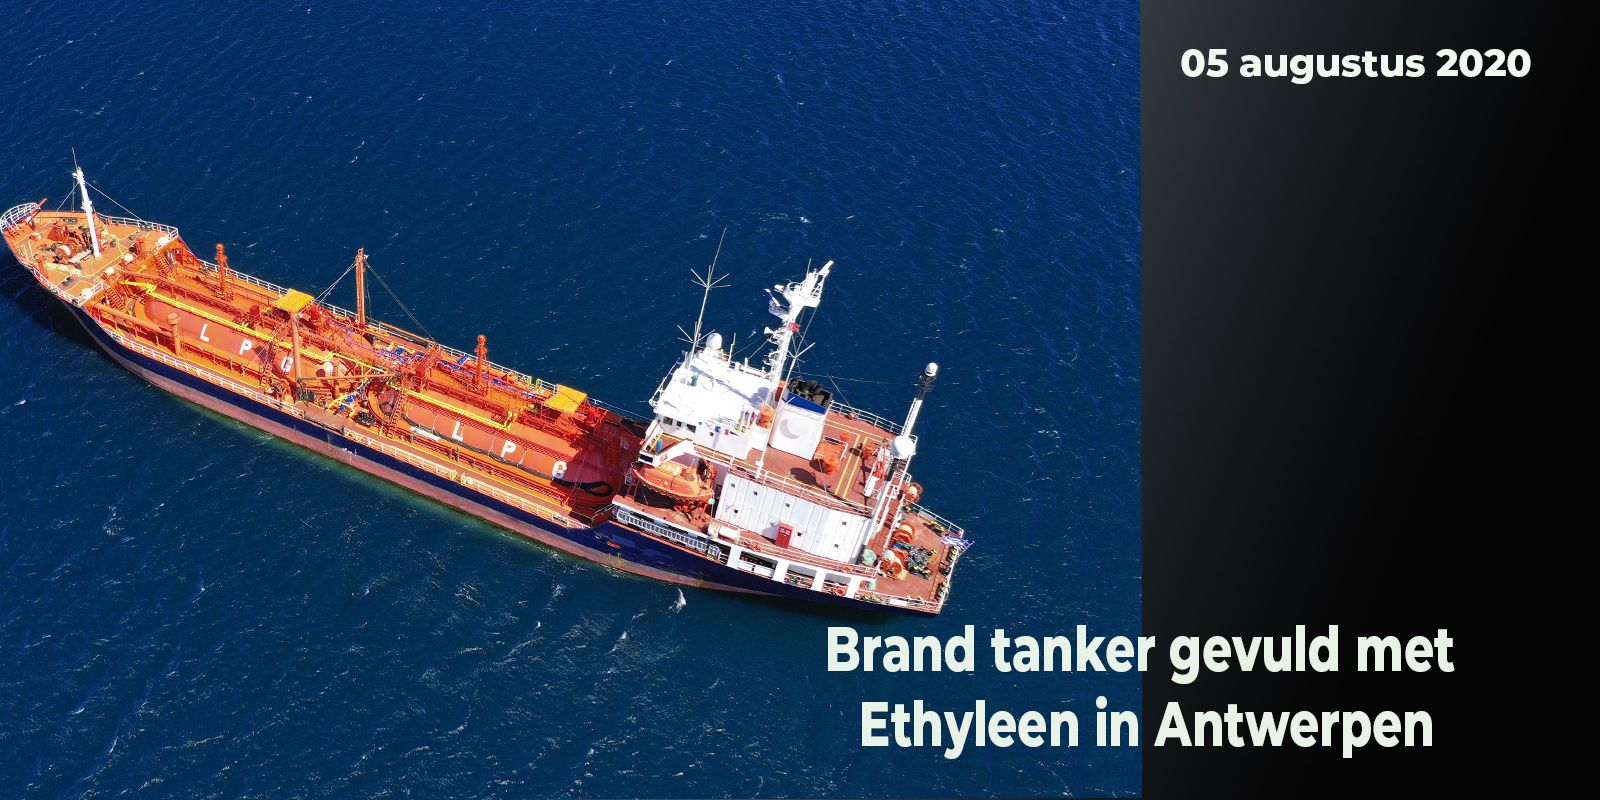 images/NIEUWSIMAGES/HEADERS/05-08-2020 - brand tanker ethyleen.jpg